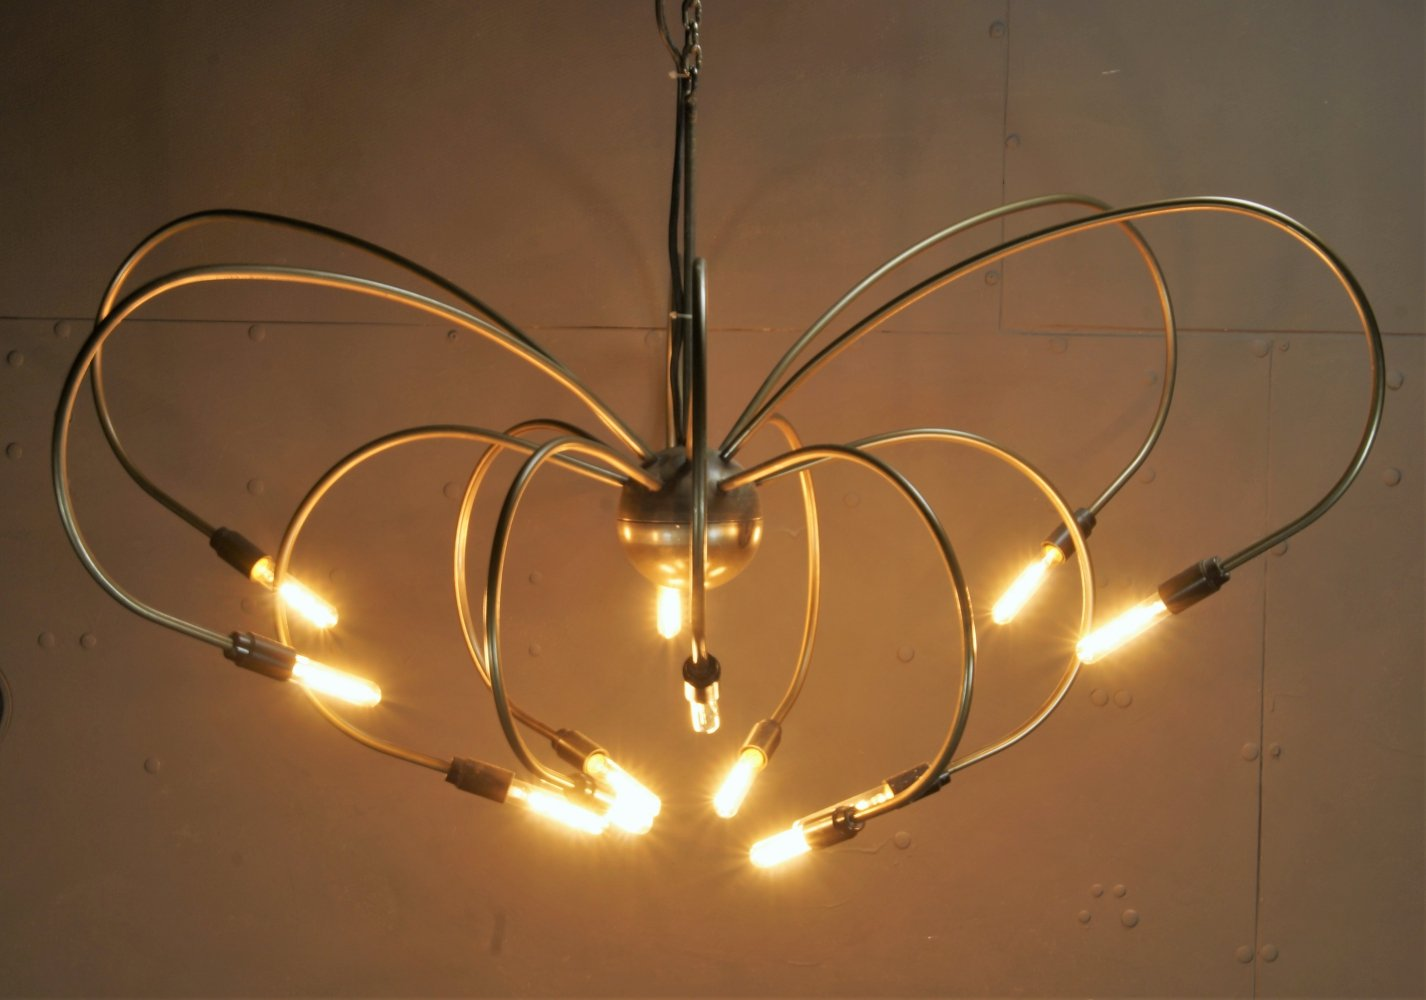 Brass 12-armed chandelier with filiament bulbs